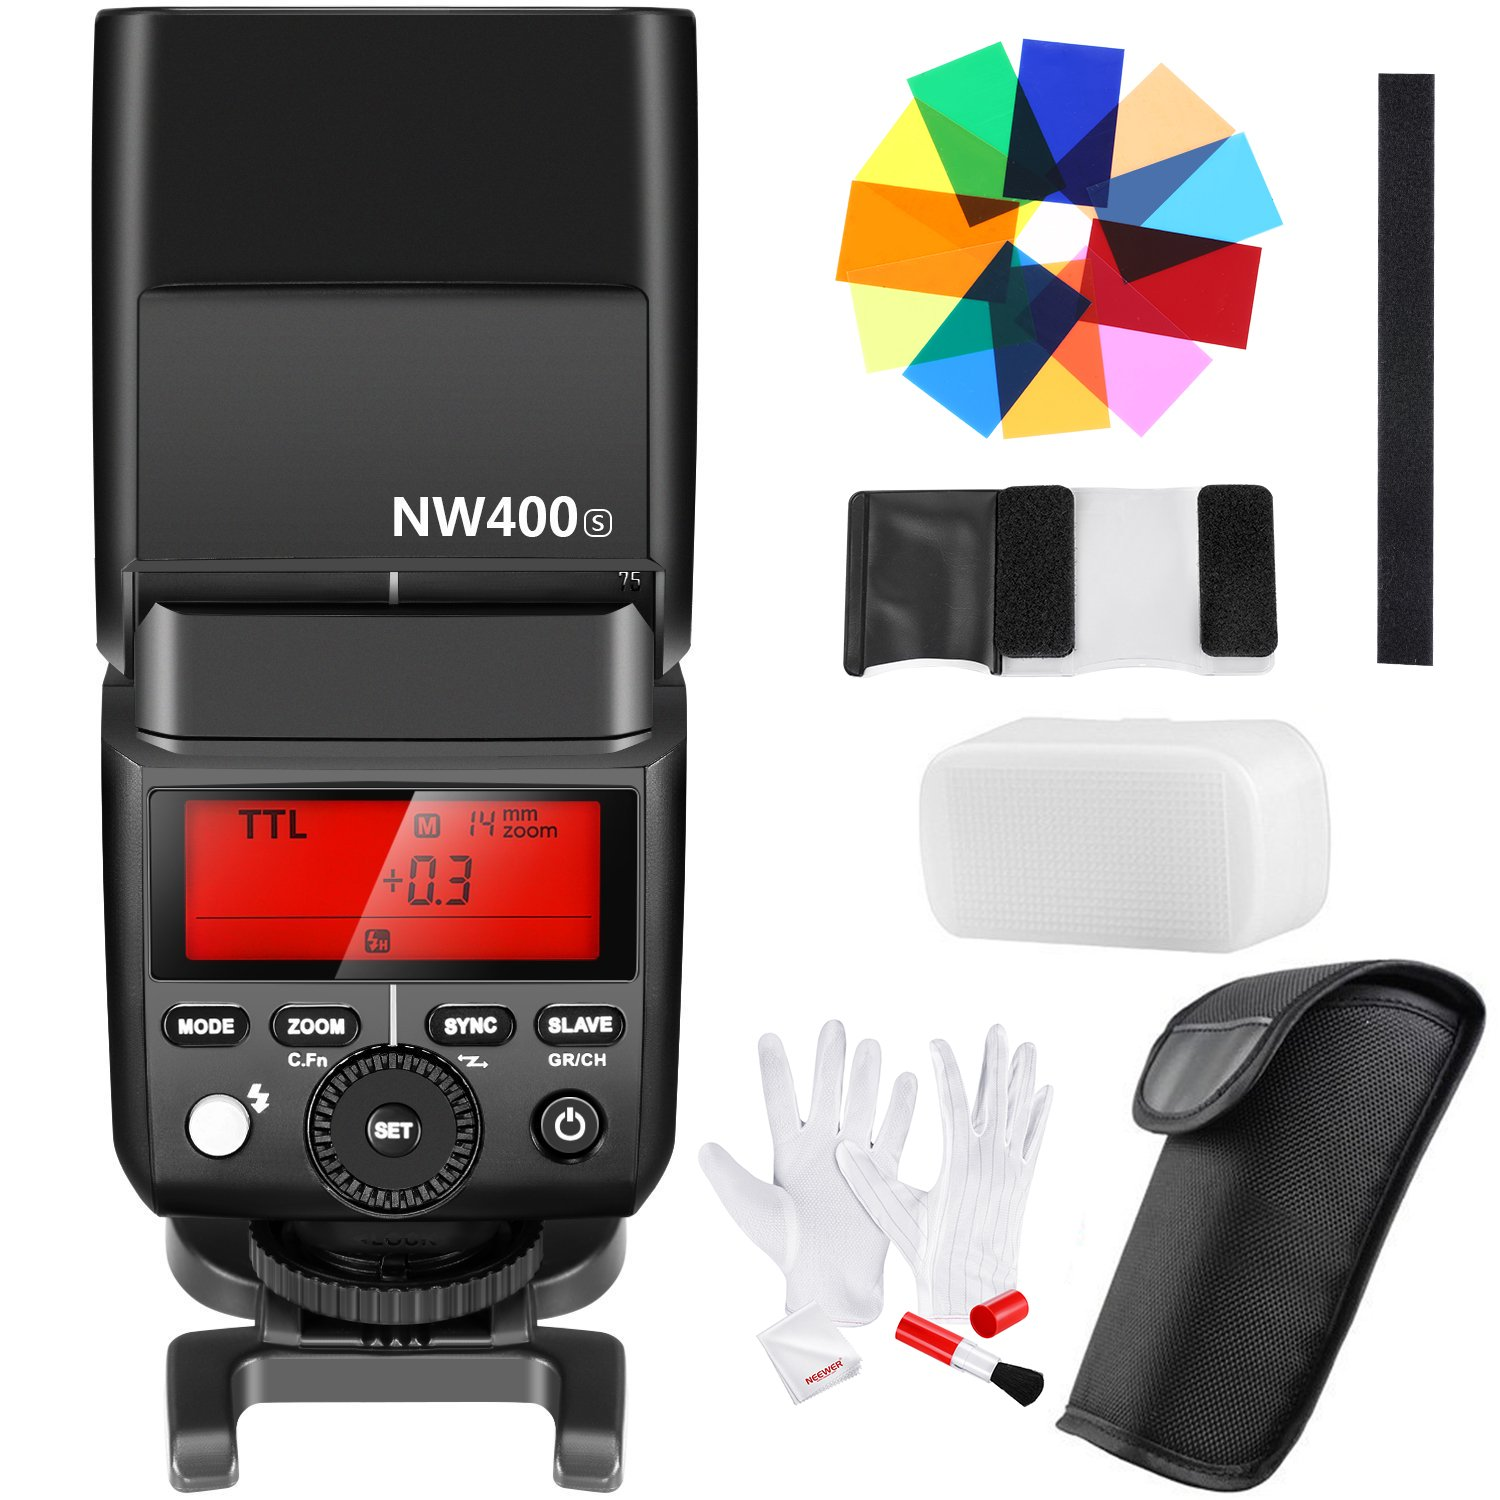 Neewer 2.4G HSS 1/8000s TTL GN36 Wireless Master Slave Flash Speedlite, 12 Color Filters, 3-in-1 Cleaning Kit for Sony A7 A7R A7S A7II A7RII A7SII A6000 A6300 A6500 A77II A58 A99 RX10 Cameras(NW400S) 90090853